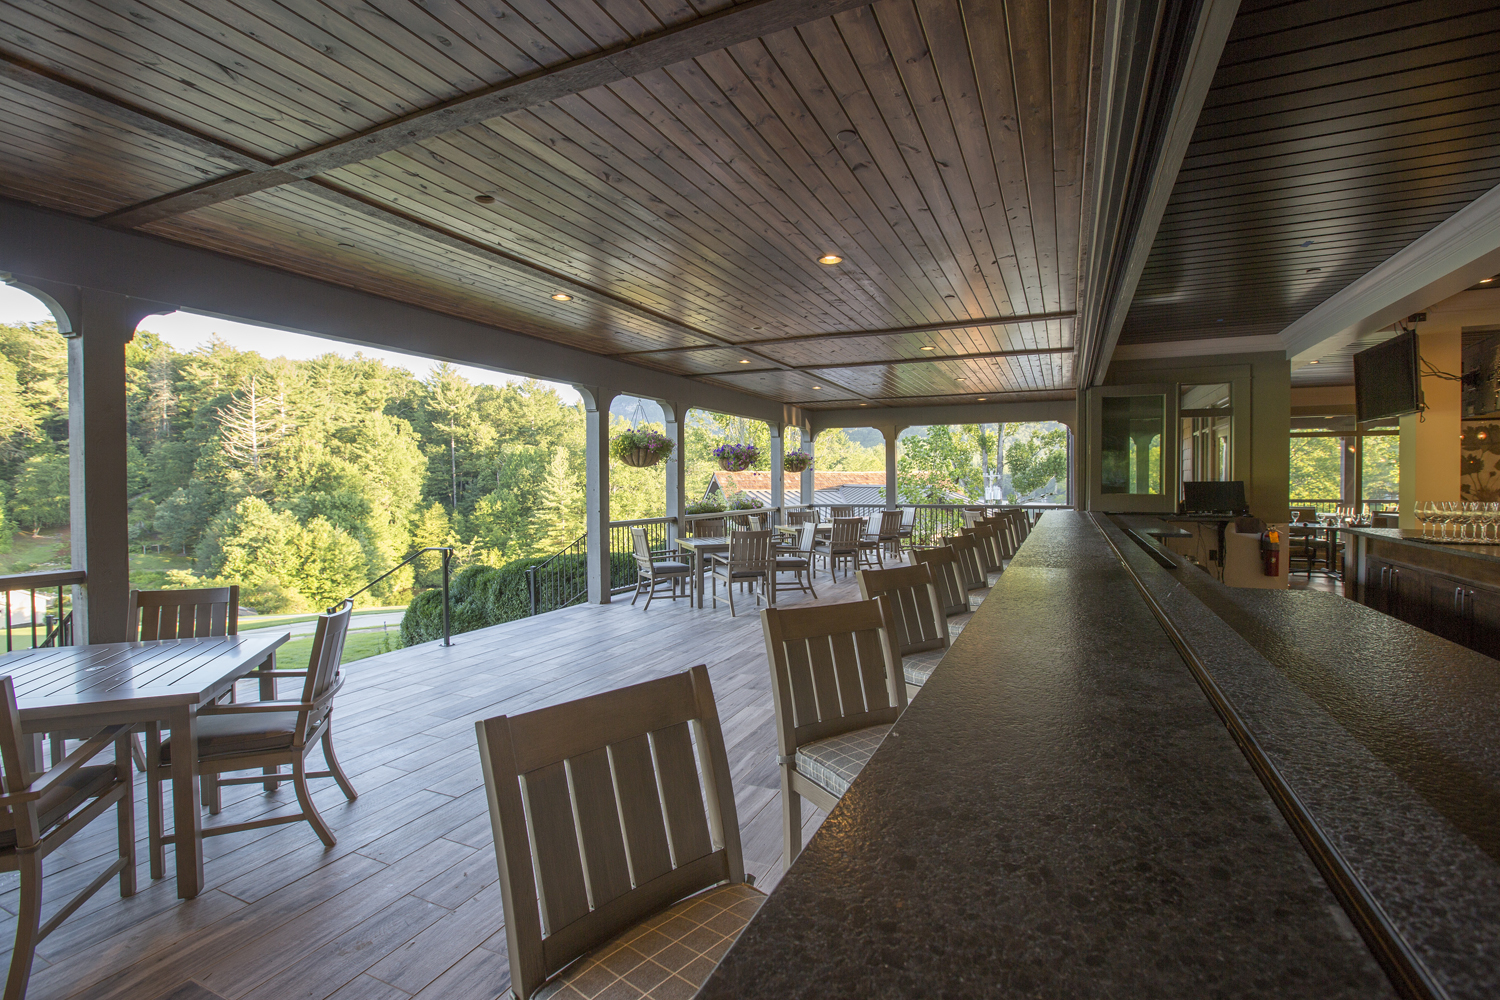 © Traci Rhoads Interior Design, Private Residences and Country Clubs, Lake Toxaway, NC